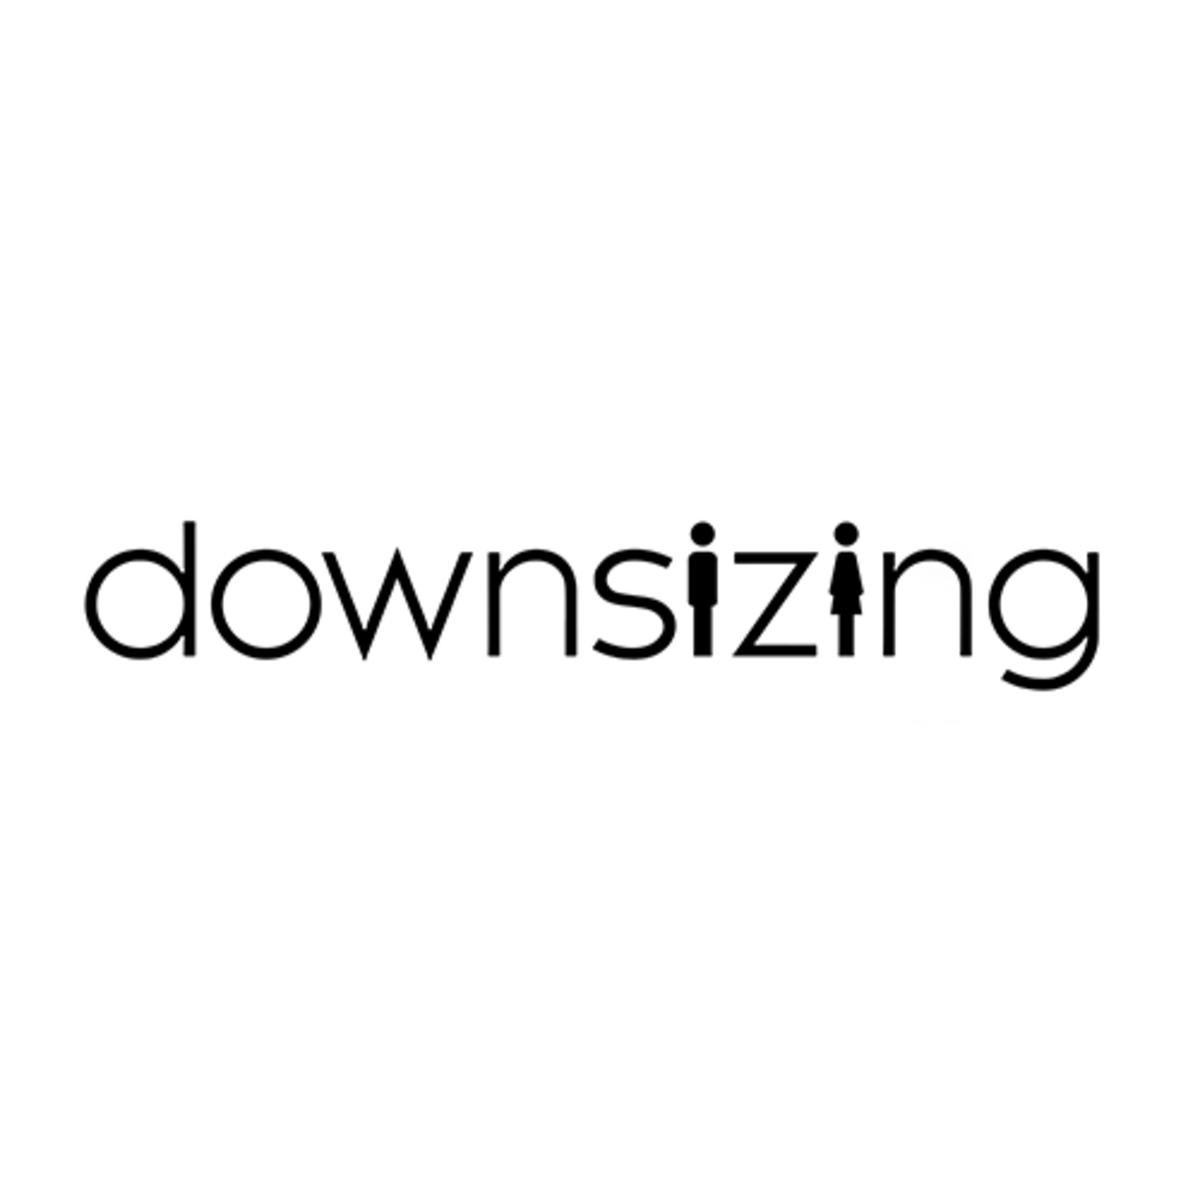 downsizing program These objective properties of downsizing include: (1) the use of downsizing alternatives, (2) the downsizing method or methods used, (3) the severity of the work force reductions, and (4) aspects of the downsizing implementation program.